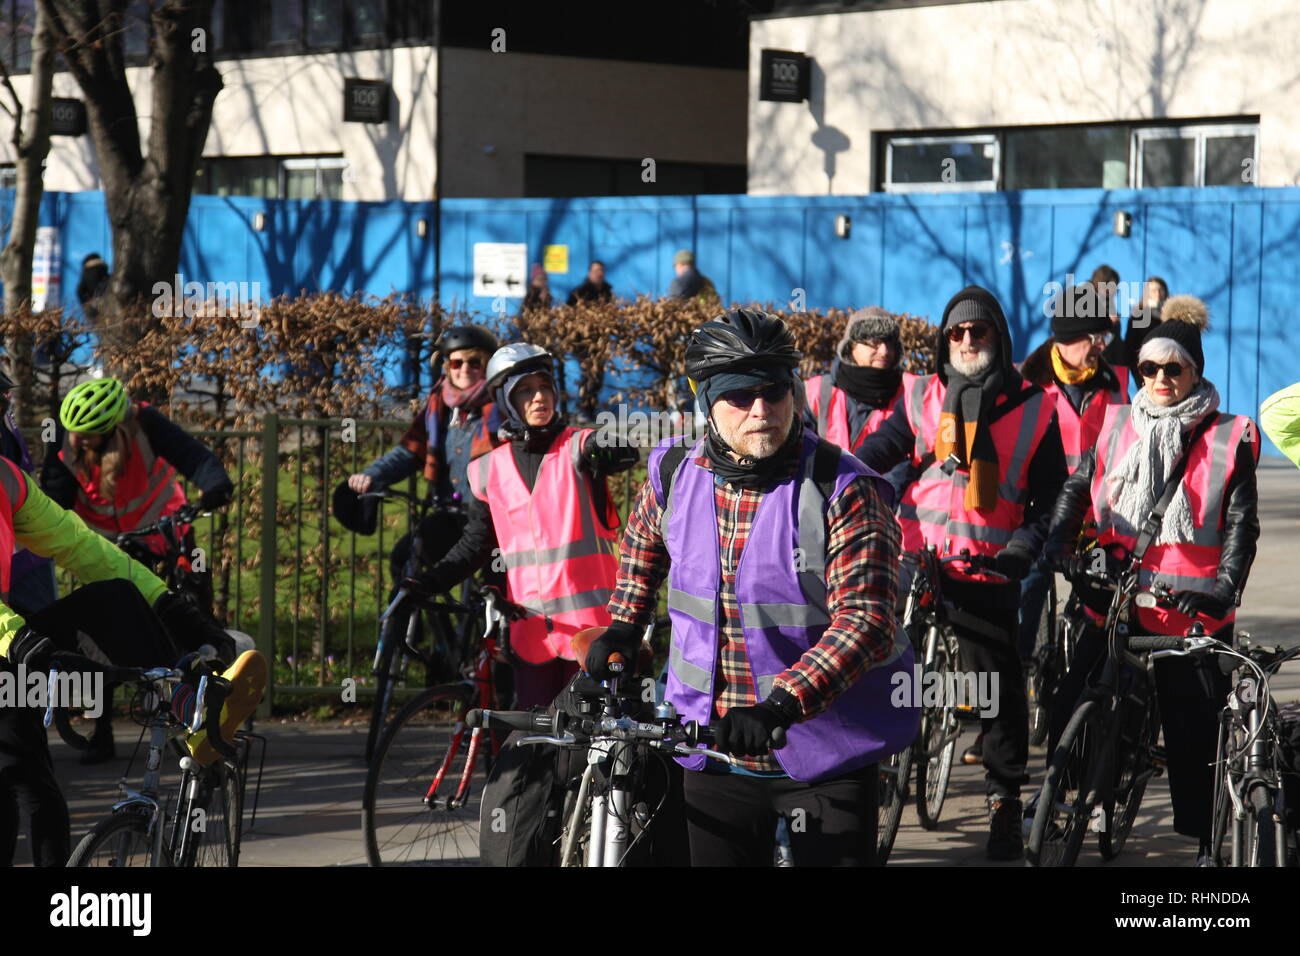 London, UK, February 3rd 2019. Cyclists gather in central London to take part in a ten mile ride in support of the 'Stansted 15'. The 'Stansted 15' are a group of protesters who surrounded an aircraft at Stansted airport in 2017 to prevent it being used to carry out a deportation. The 15 have been found guilty of terrorism related charges and will be sentenced in Chelmsford on February the 6th. Roland Ravenhill/Alamy Live News - Stock Image